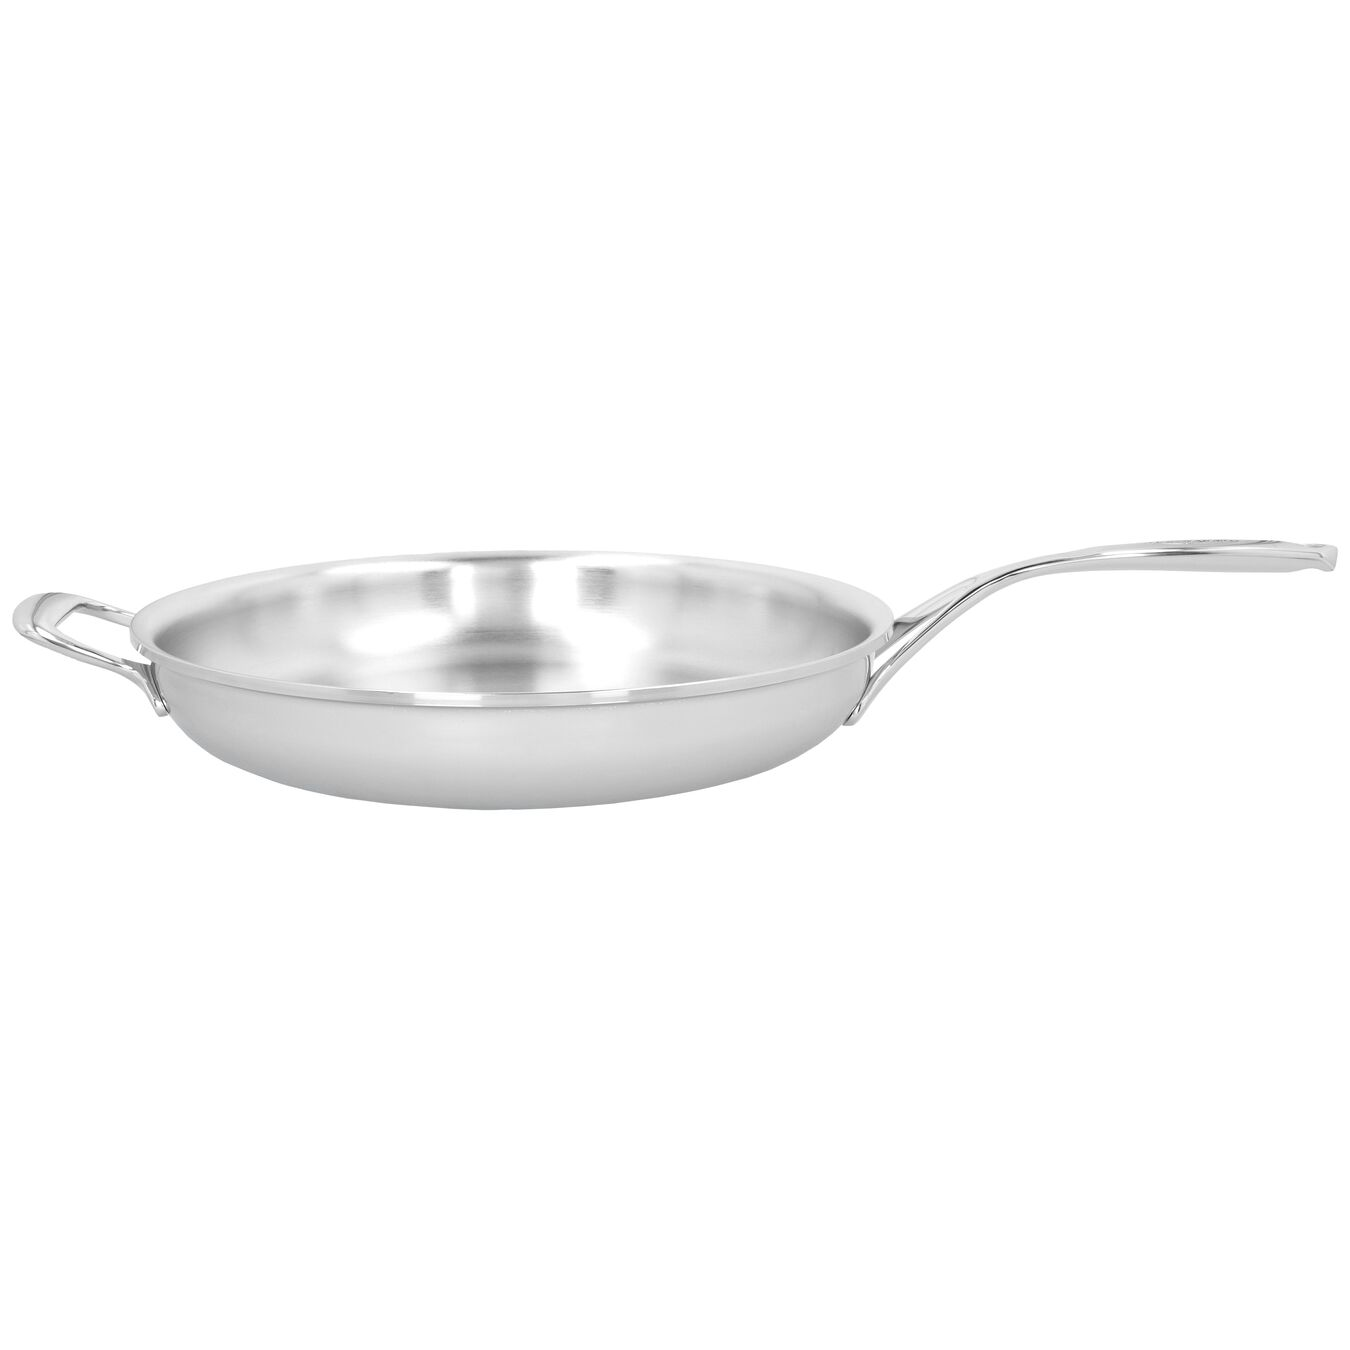 12.5-inch, 18/10 Stainless Steel, Proline Fry Pan with Helper Handle,,large 1